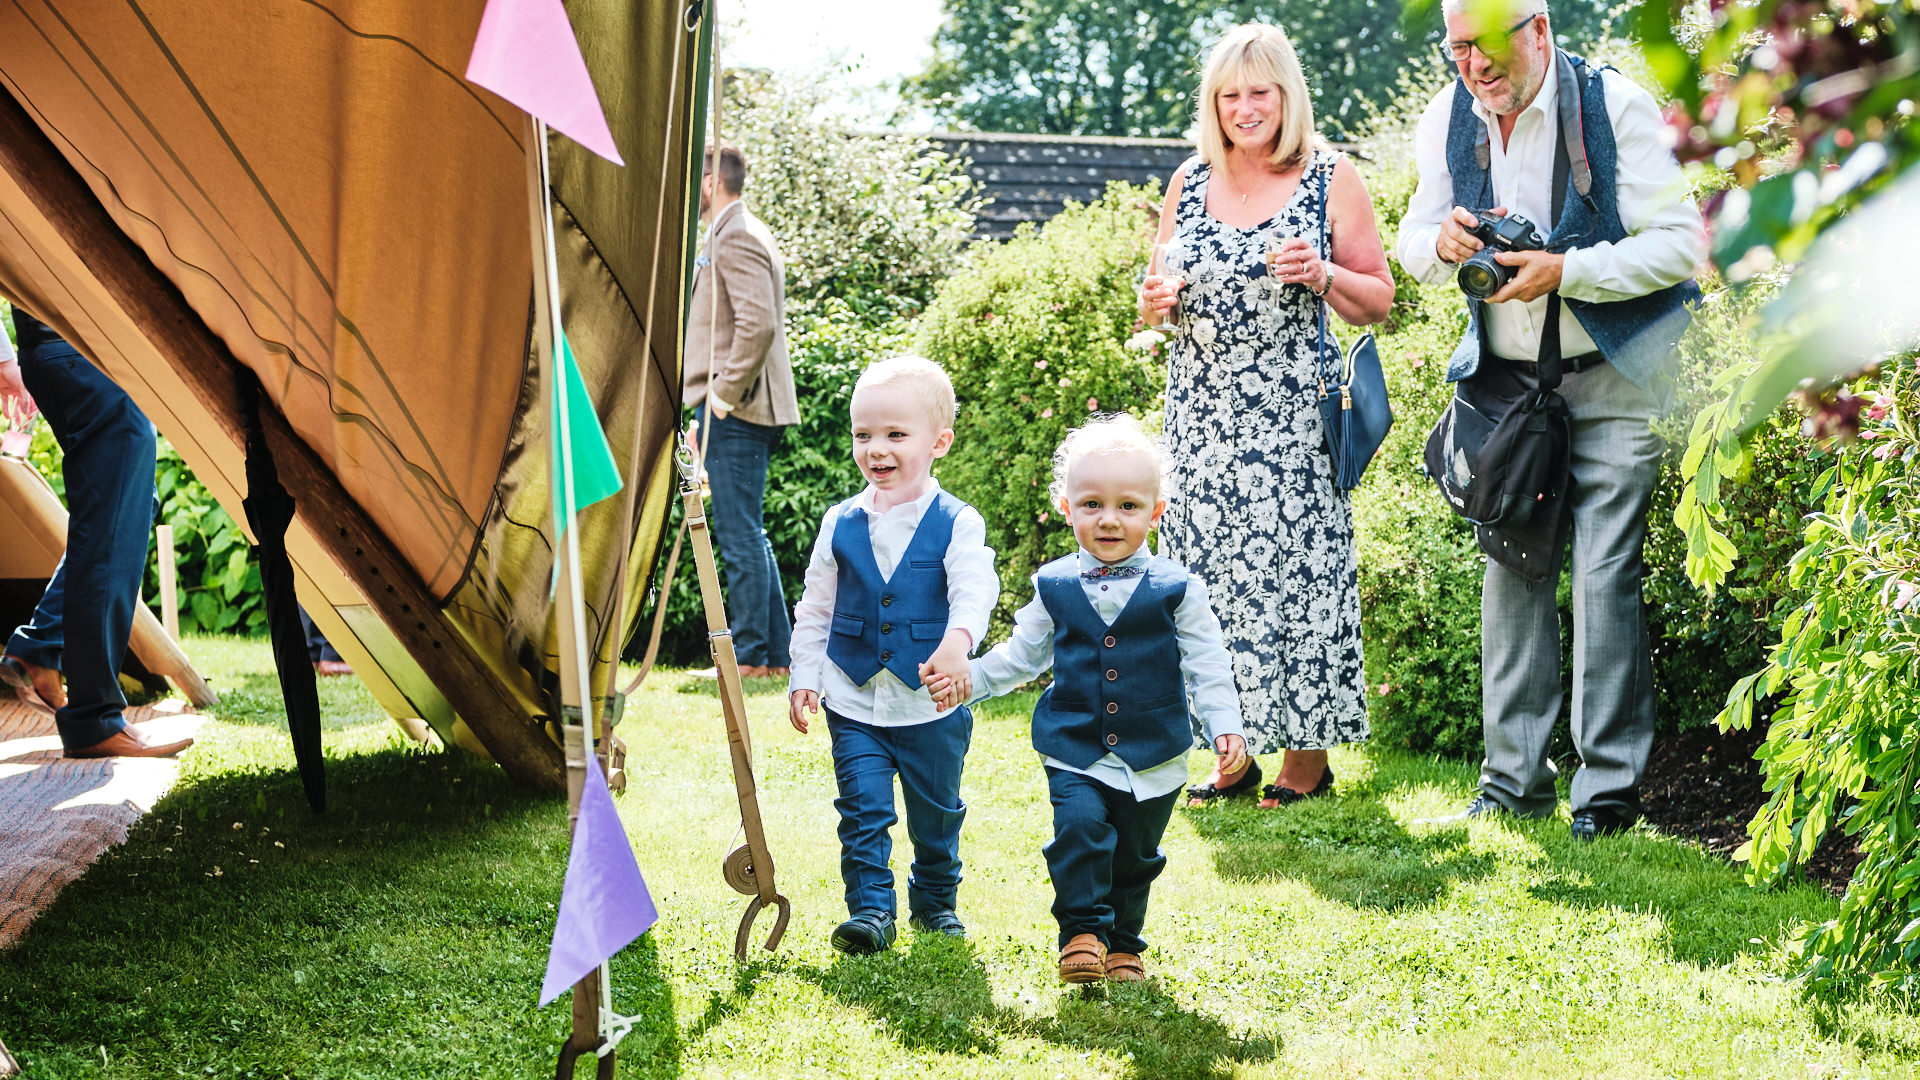 colour photograph of two small boys dressed in suits walking hand in had at a wedding